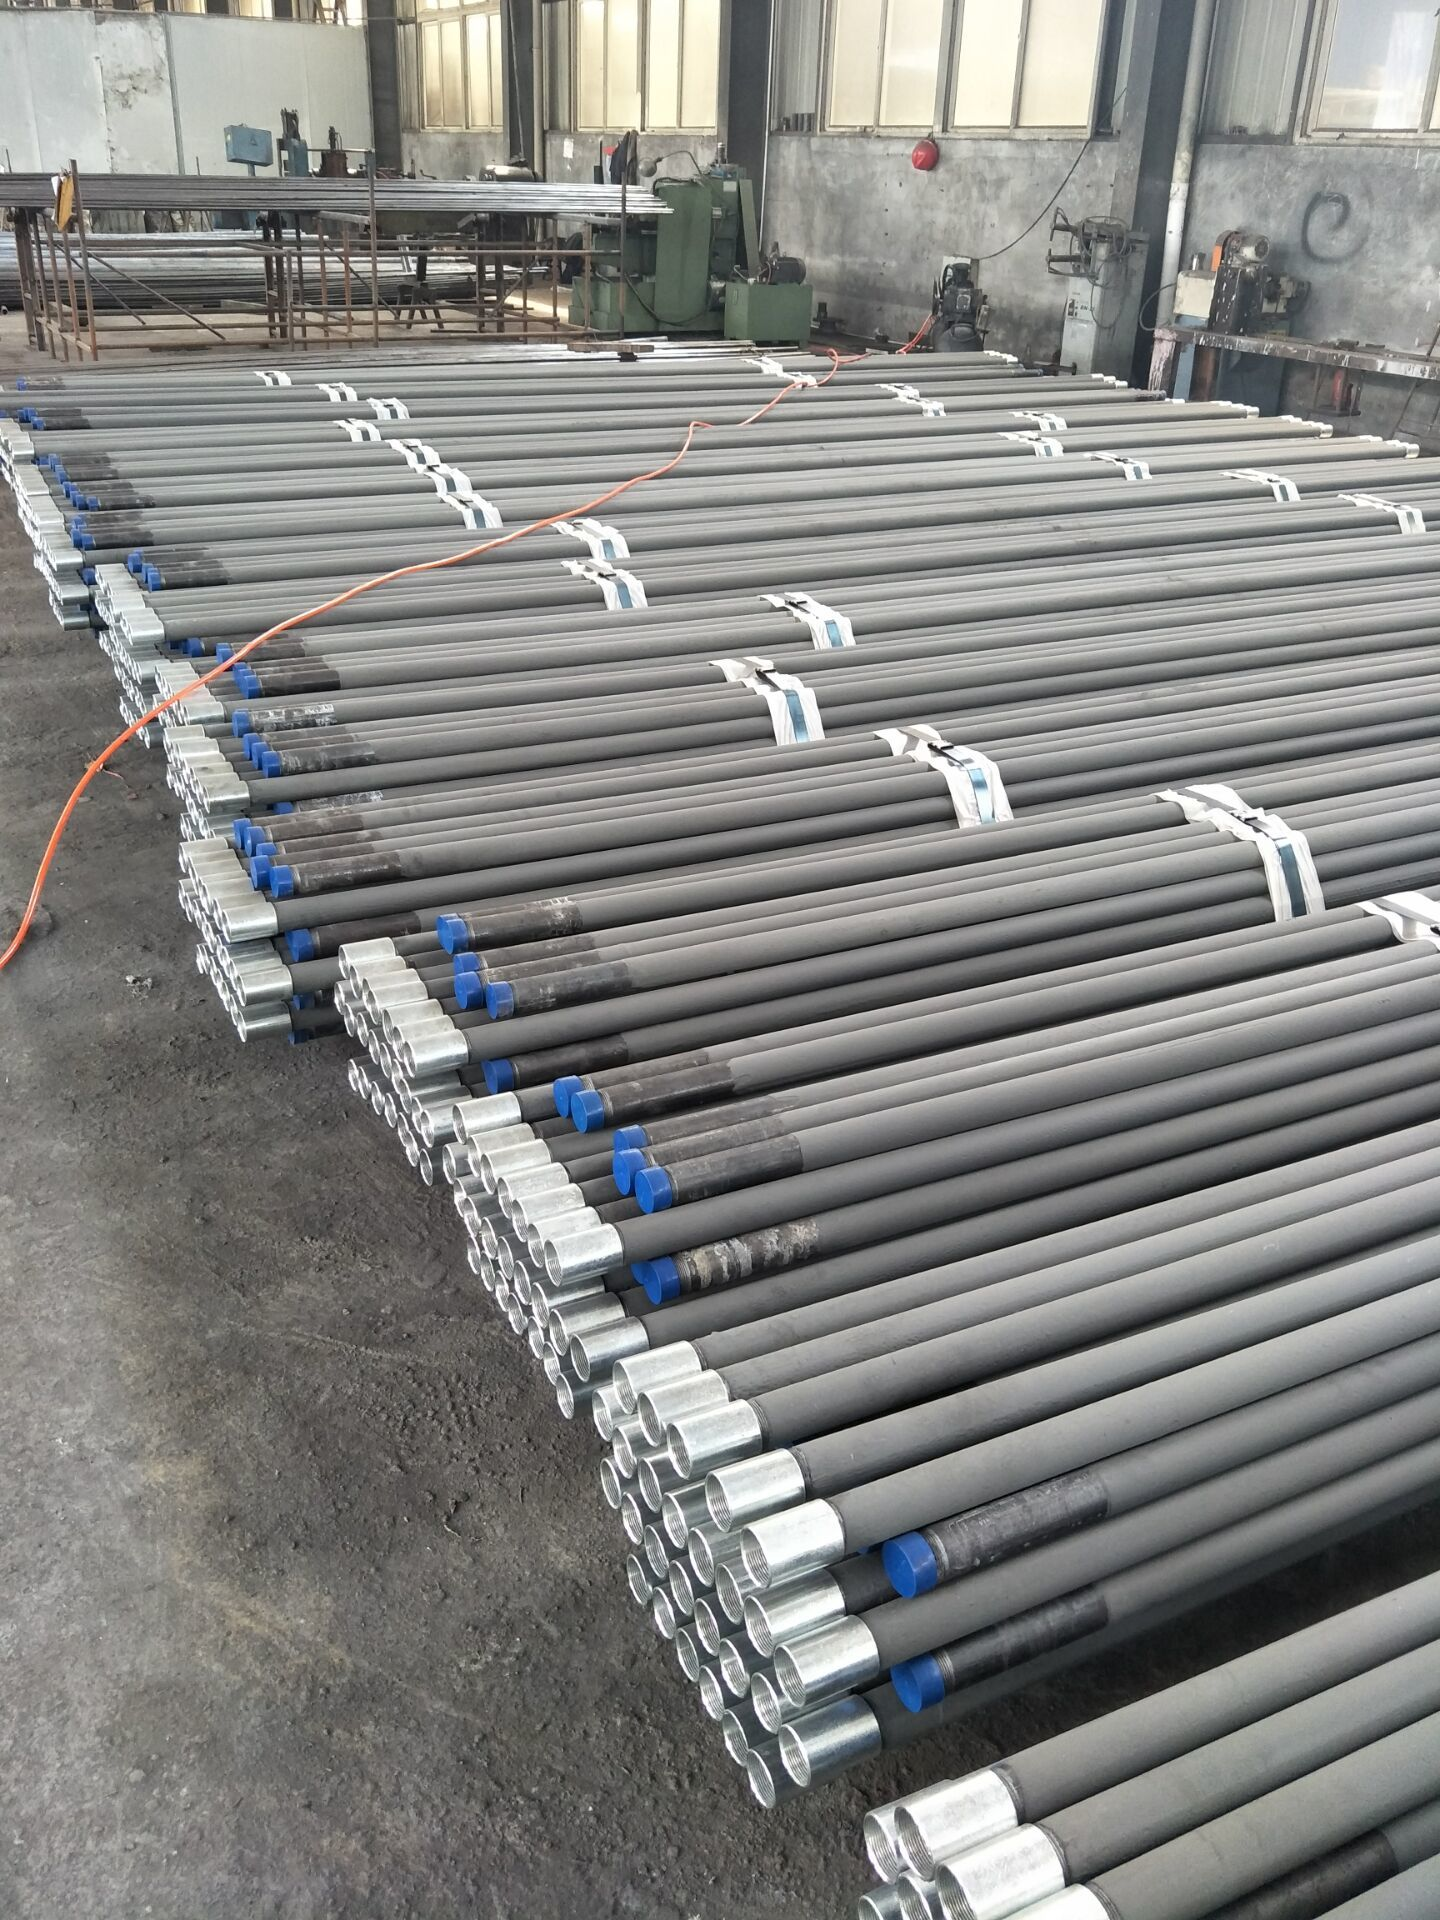 Oxygen Lance Pipes